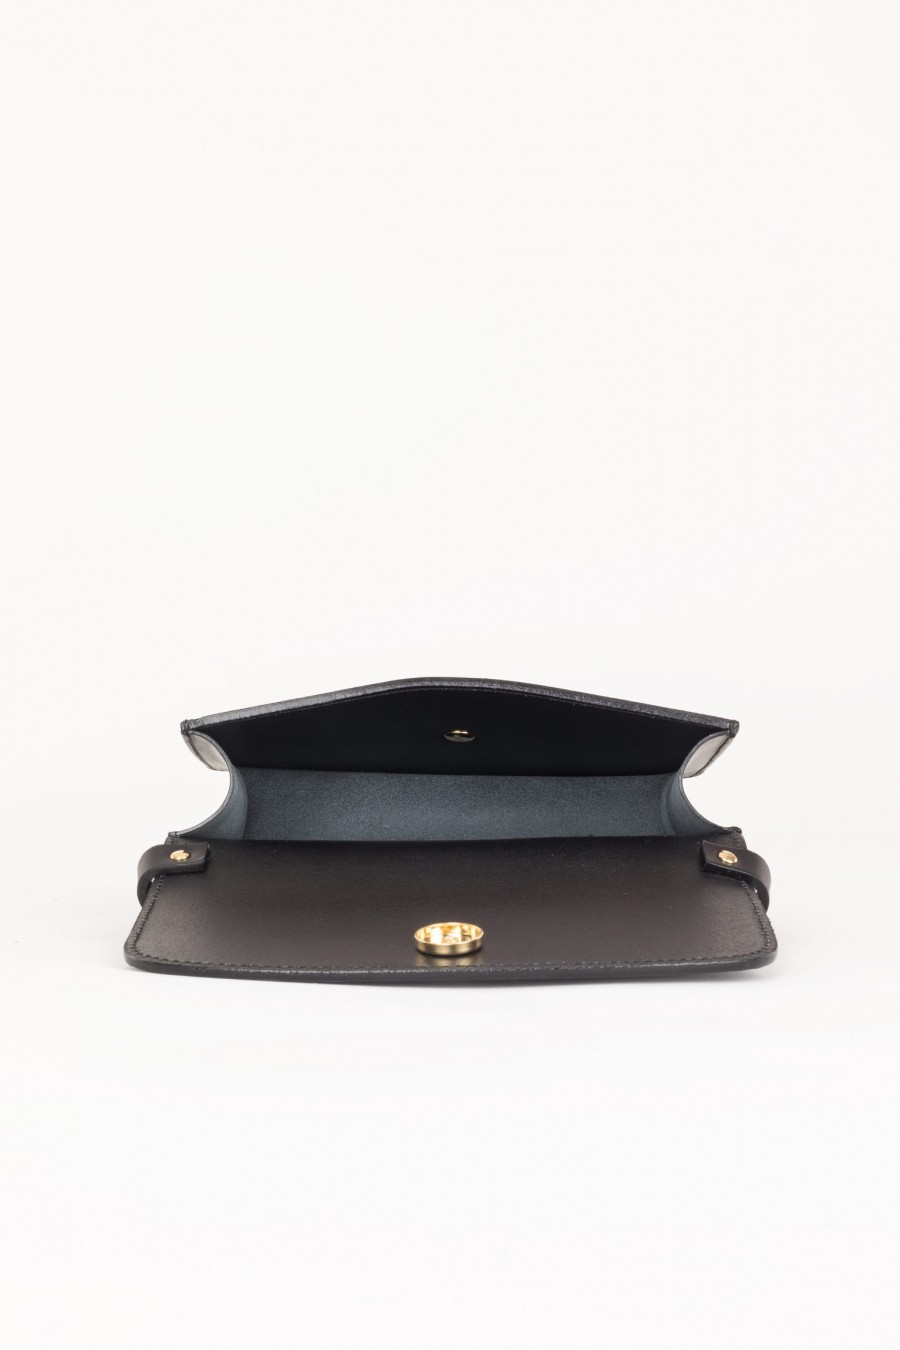 Bag with golden stud button